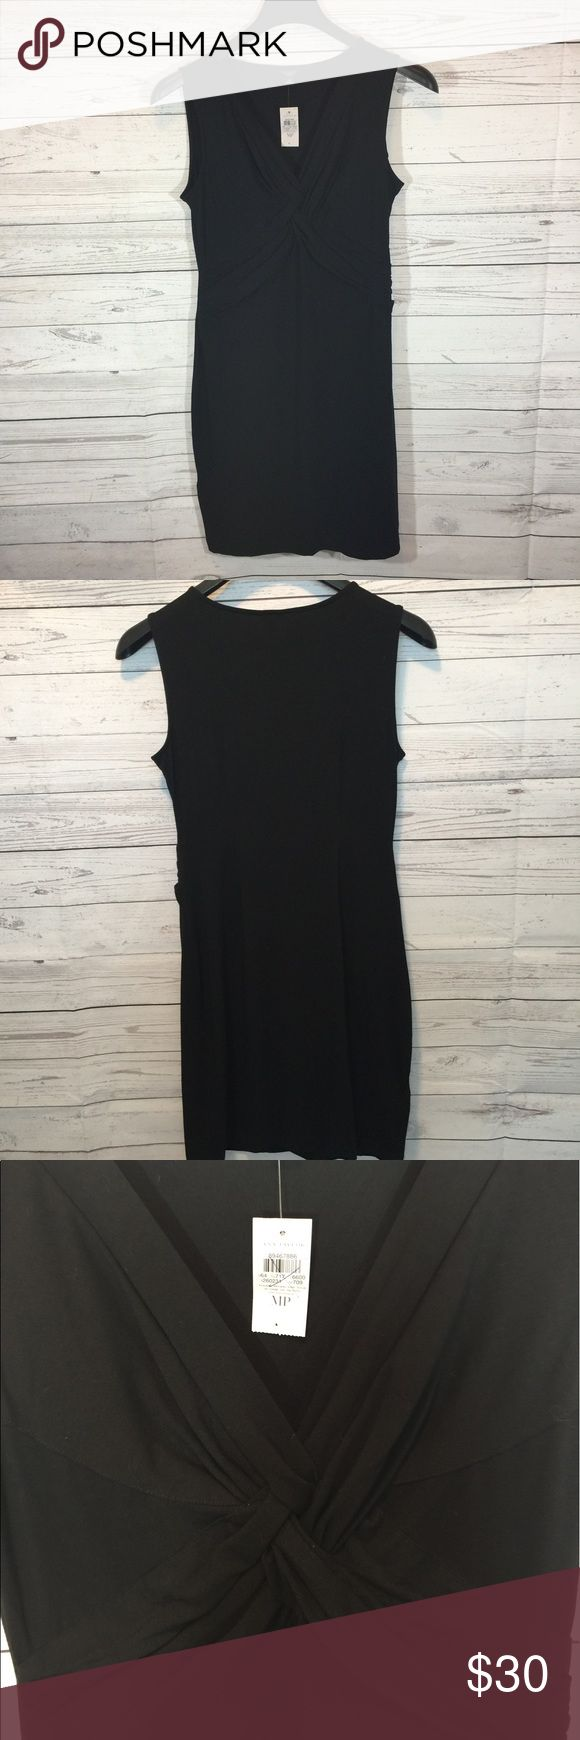 NEW Ann Taylor Petite Black Dress Size MP NWT Ann Taylor Black Dress with Knotted Design on Front. Petite Size MP. 93% Rayon, 7% Spandex. Light-weight, breathable Dress!  38 in length, 18 in from underarm to underarm. Ann Taylor Dresses Midi